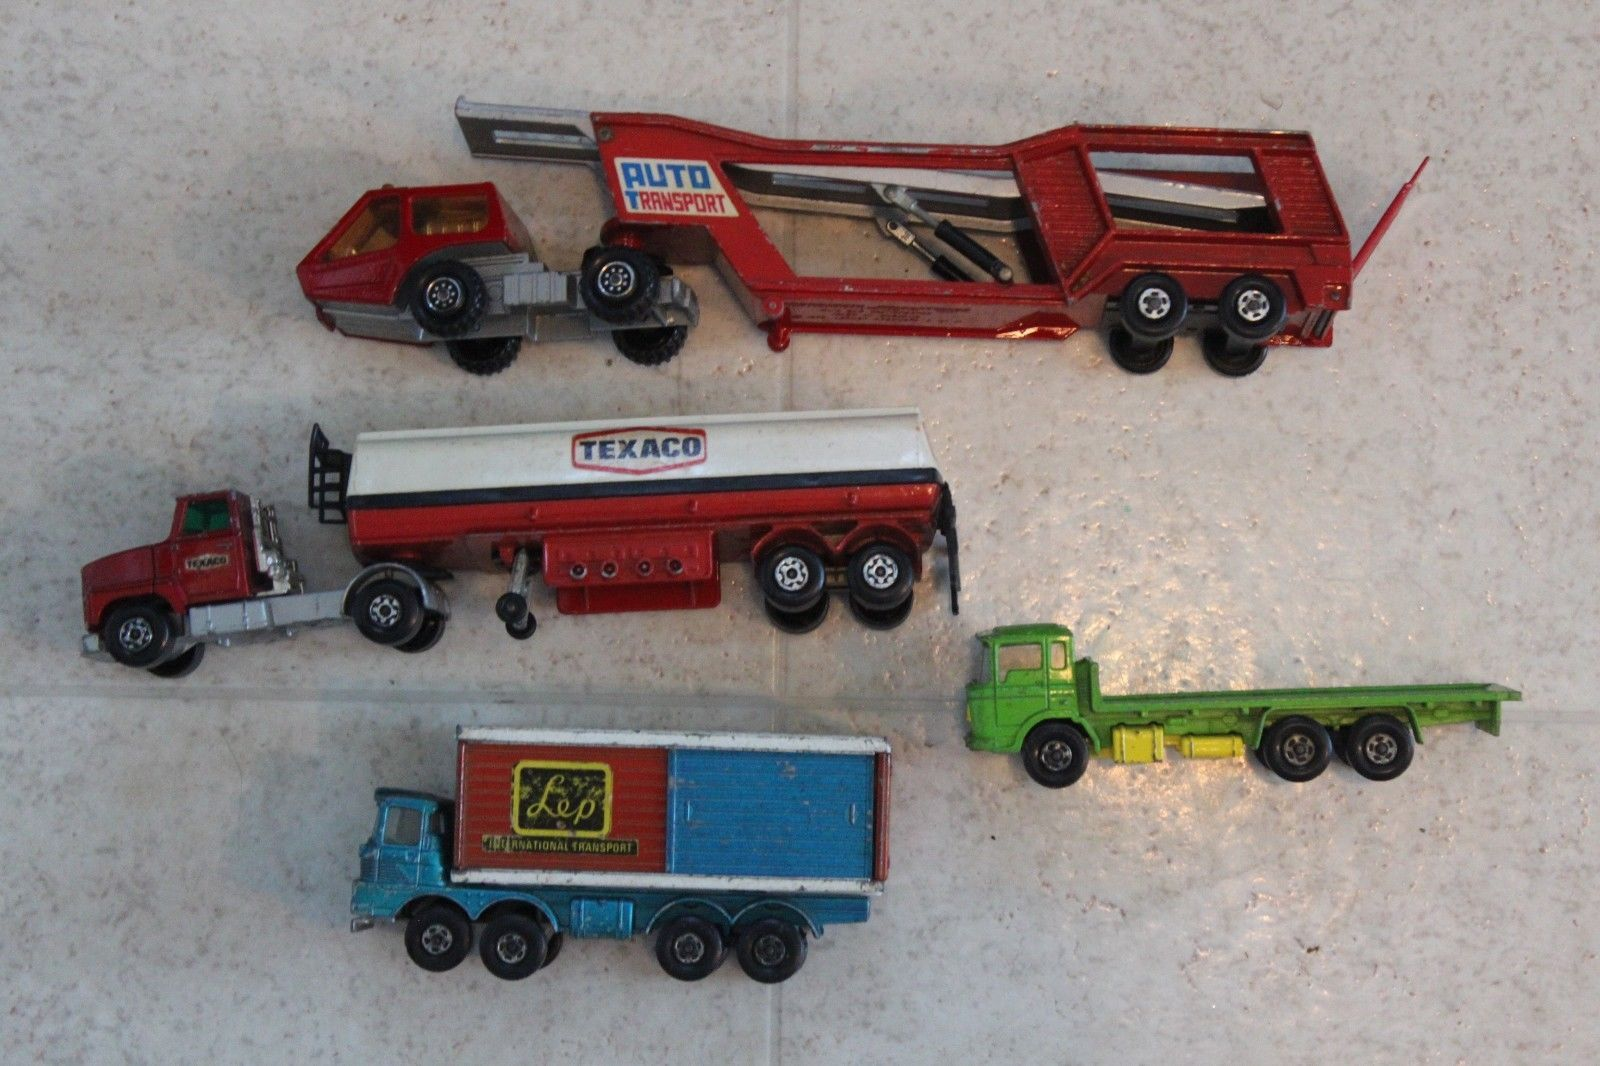 Matchbox Super Kings Lot Red K 10 Car Auto Transporter Texaco Tanker And More Toy Car Texaco Matchbox